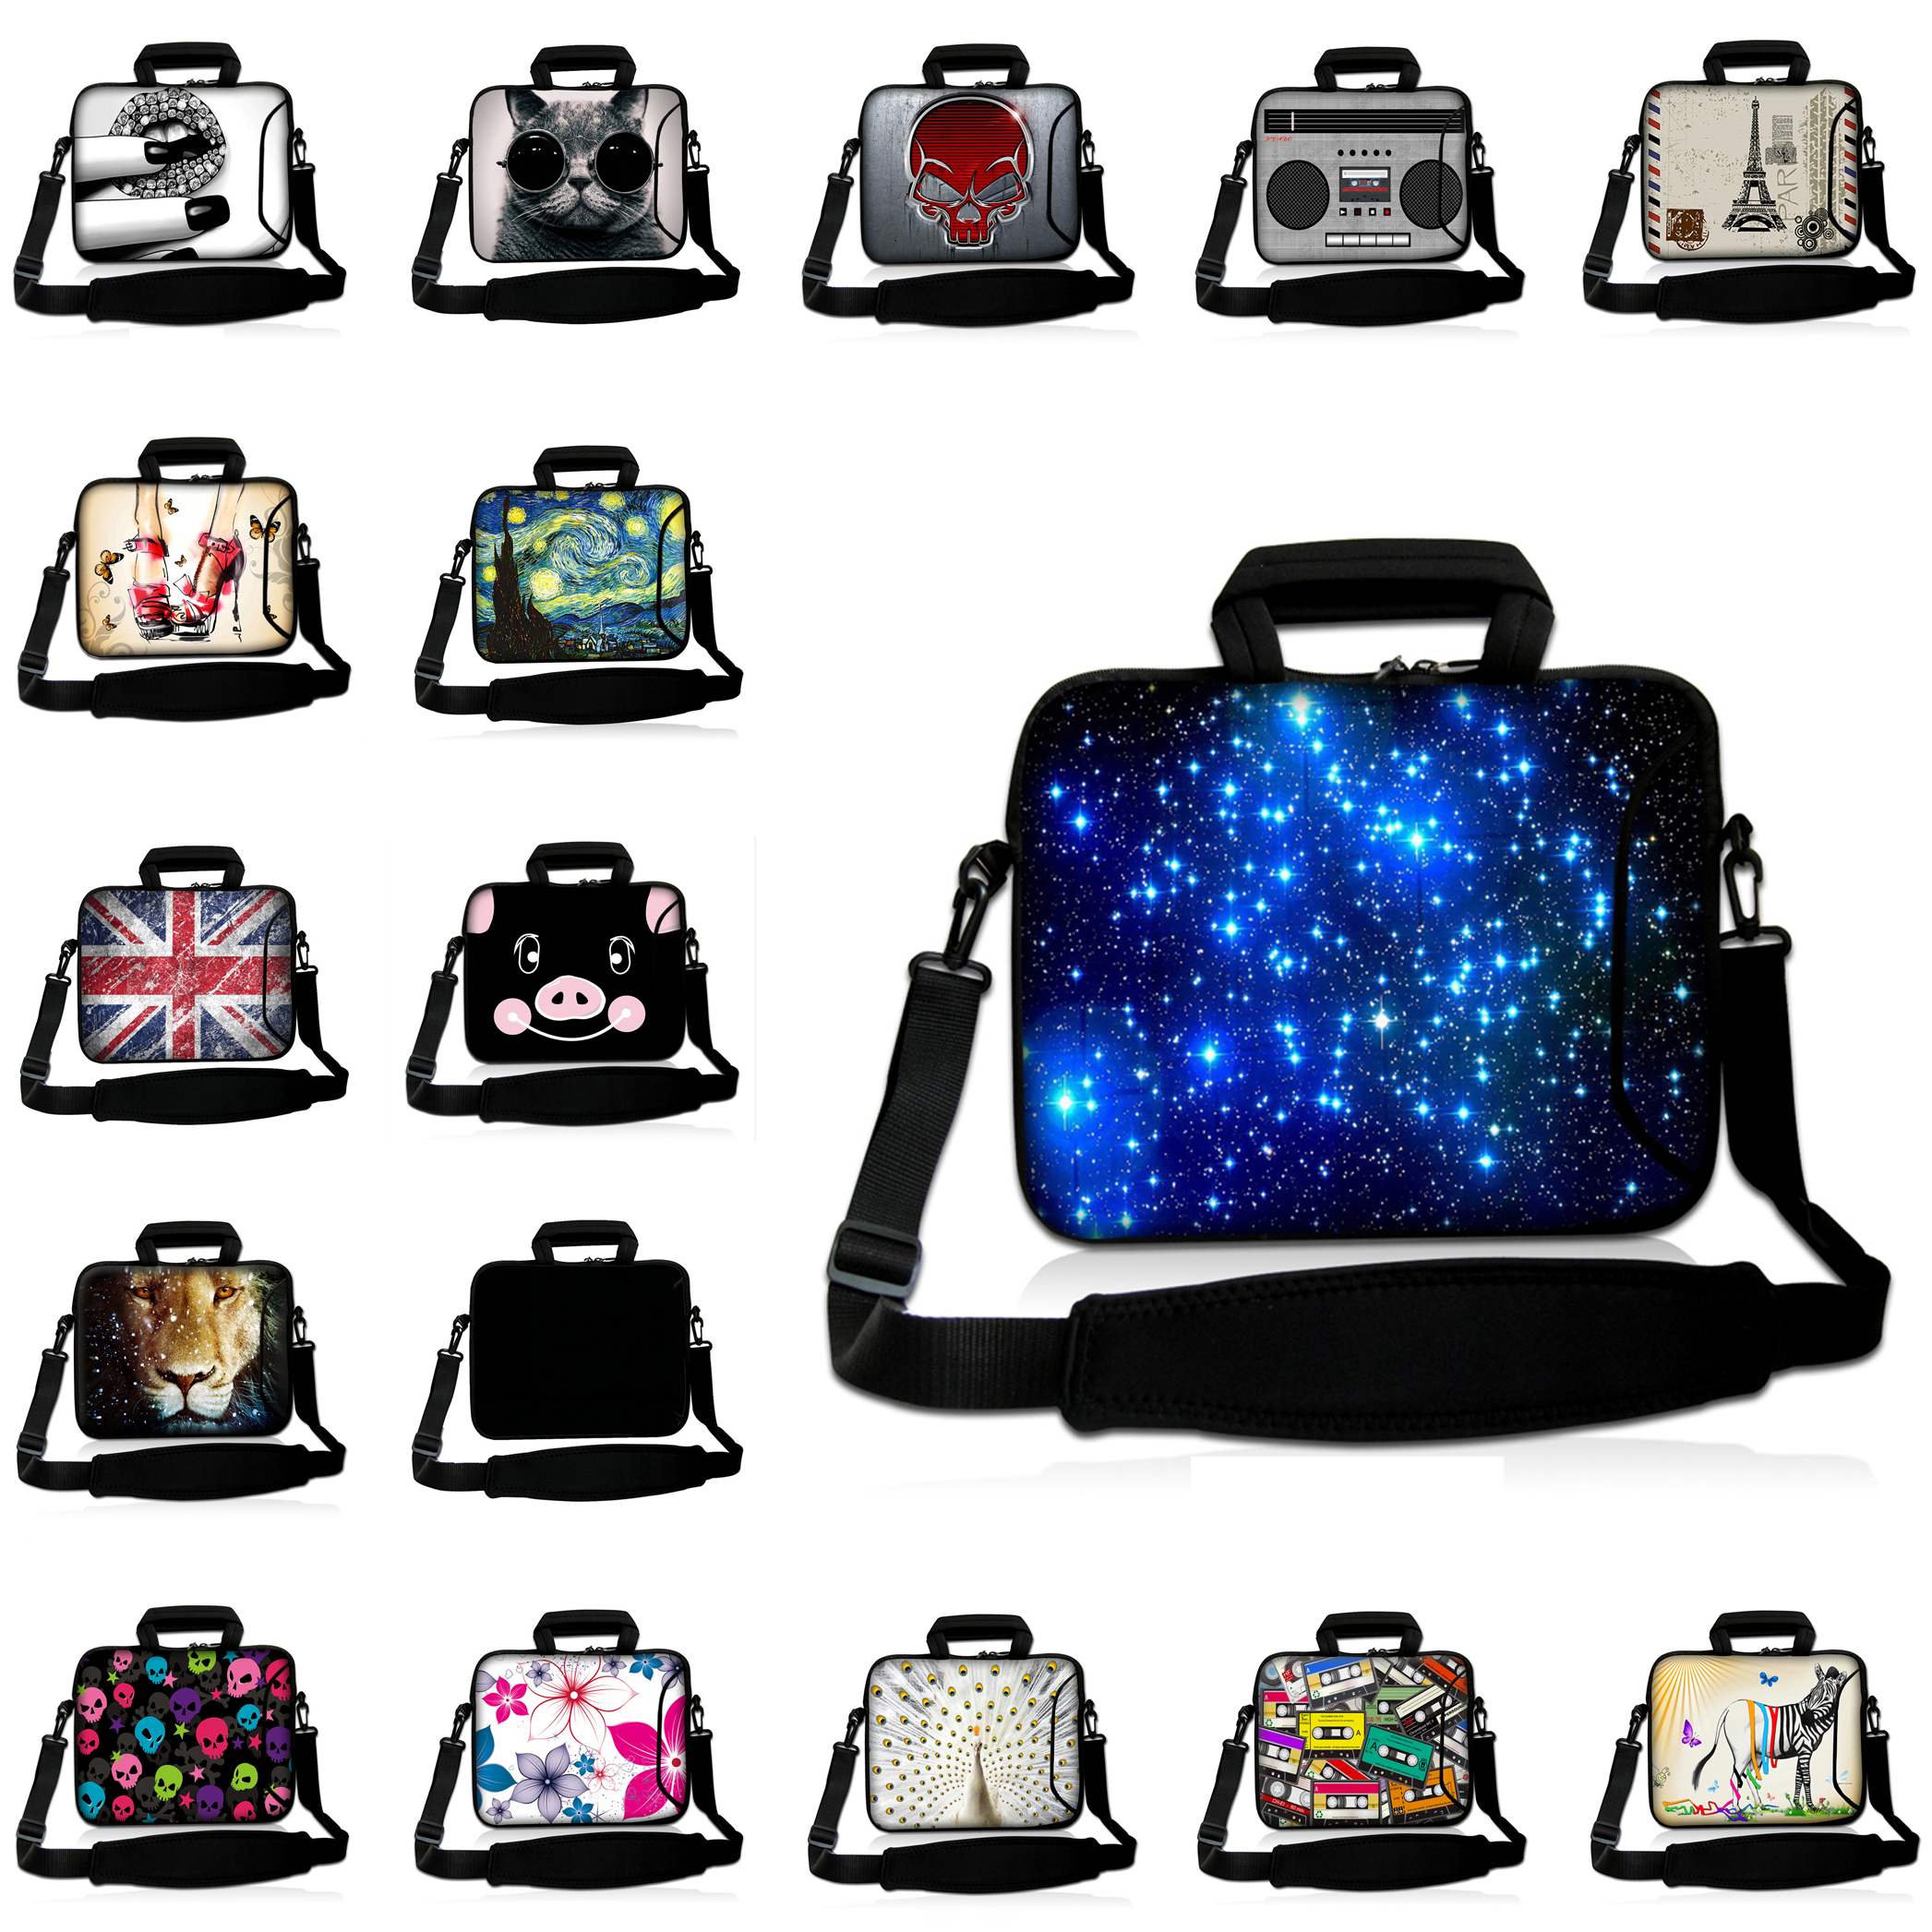 2017 New Arrival Laptop Pouch Cover 15.6 15.3 15.4 15 inch Shoulder Strap Messenger Tablet Notebook Bags For Lenovo Acer HP Envy<br><br>Aliexpress